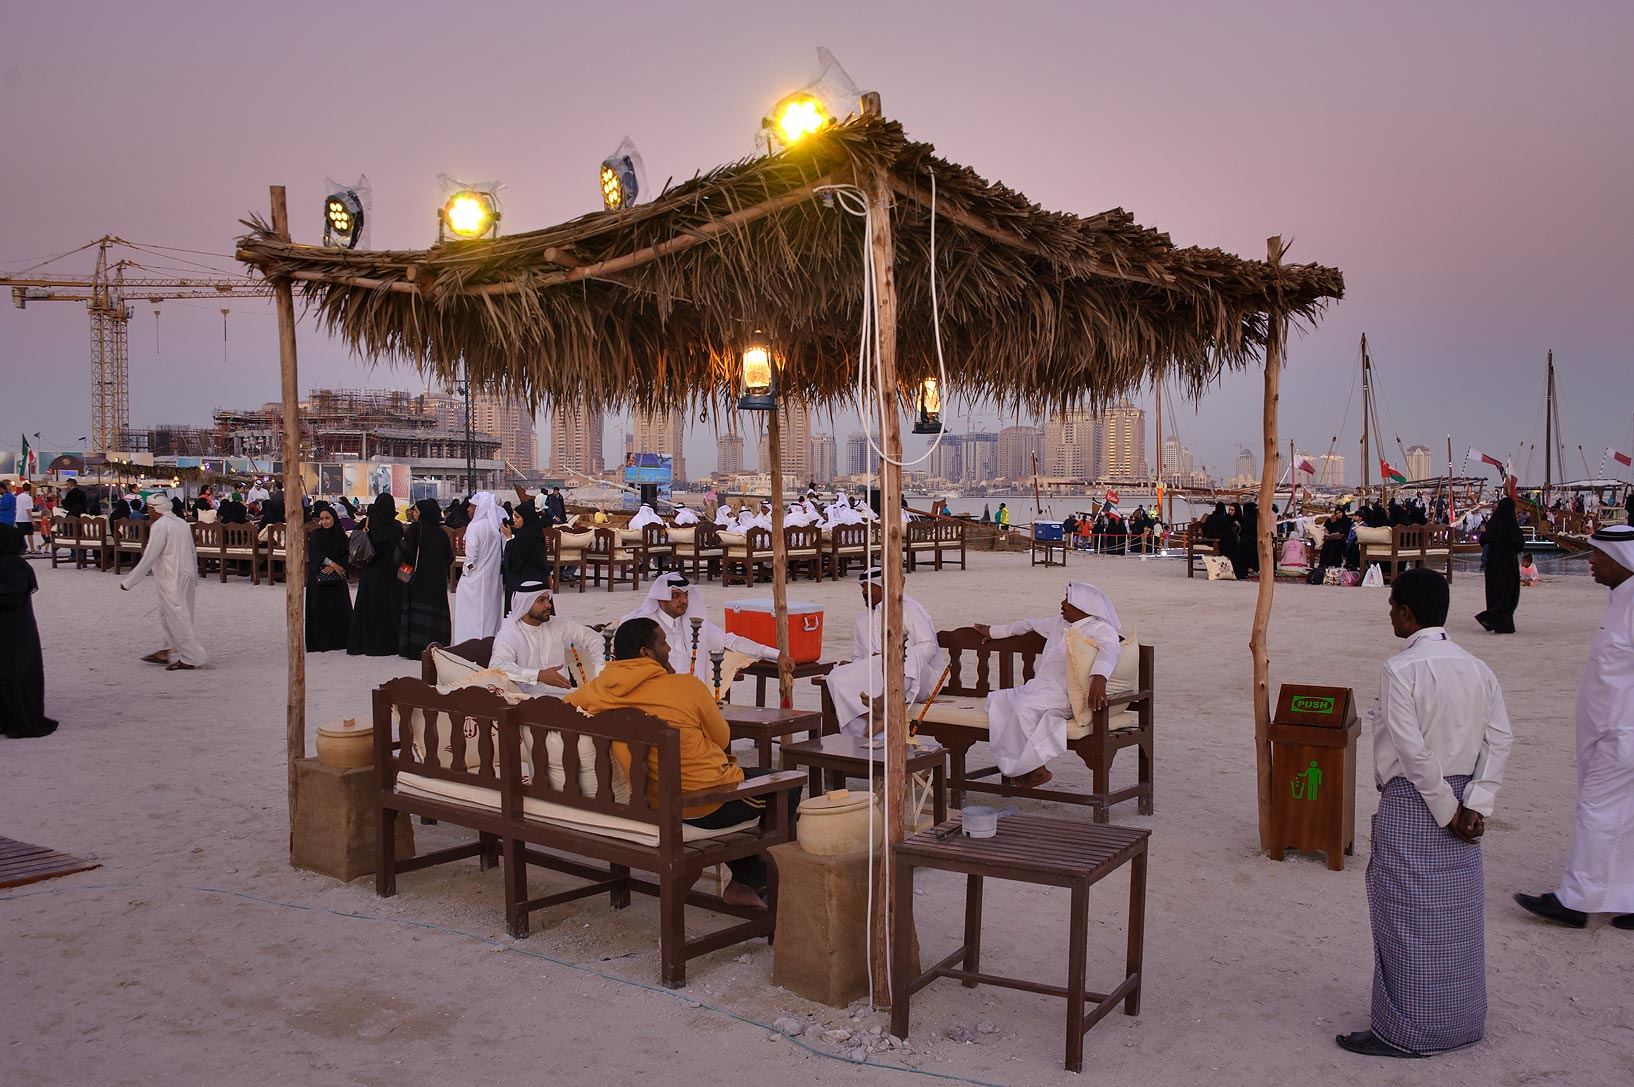 People sitting at Traditional Dhow Festival in Katara Cultural Village. Doha, Qatar